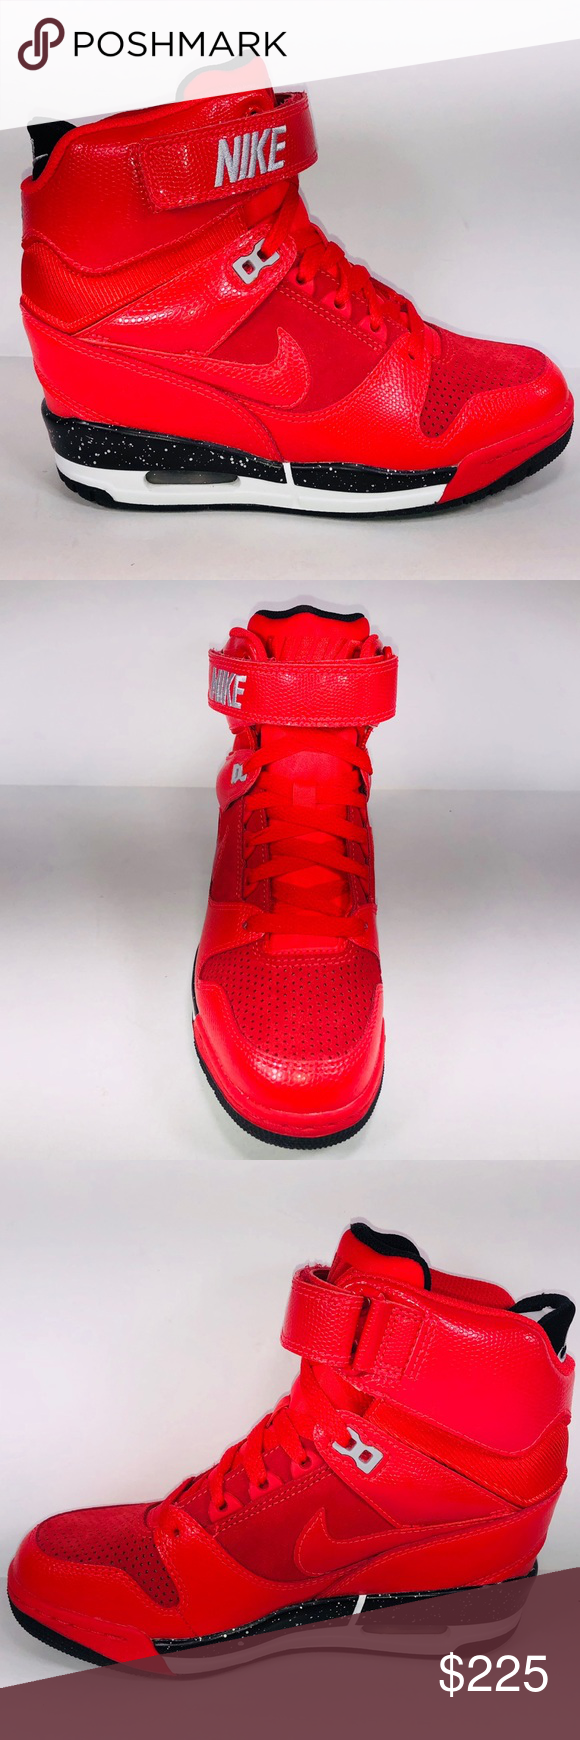 94cce04f343c Womens Nike Air Revolution Sky Hi Action Red Shoes New With Damaged Box See  Pictures For